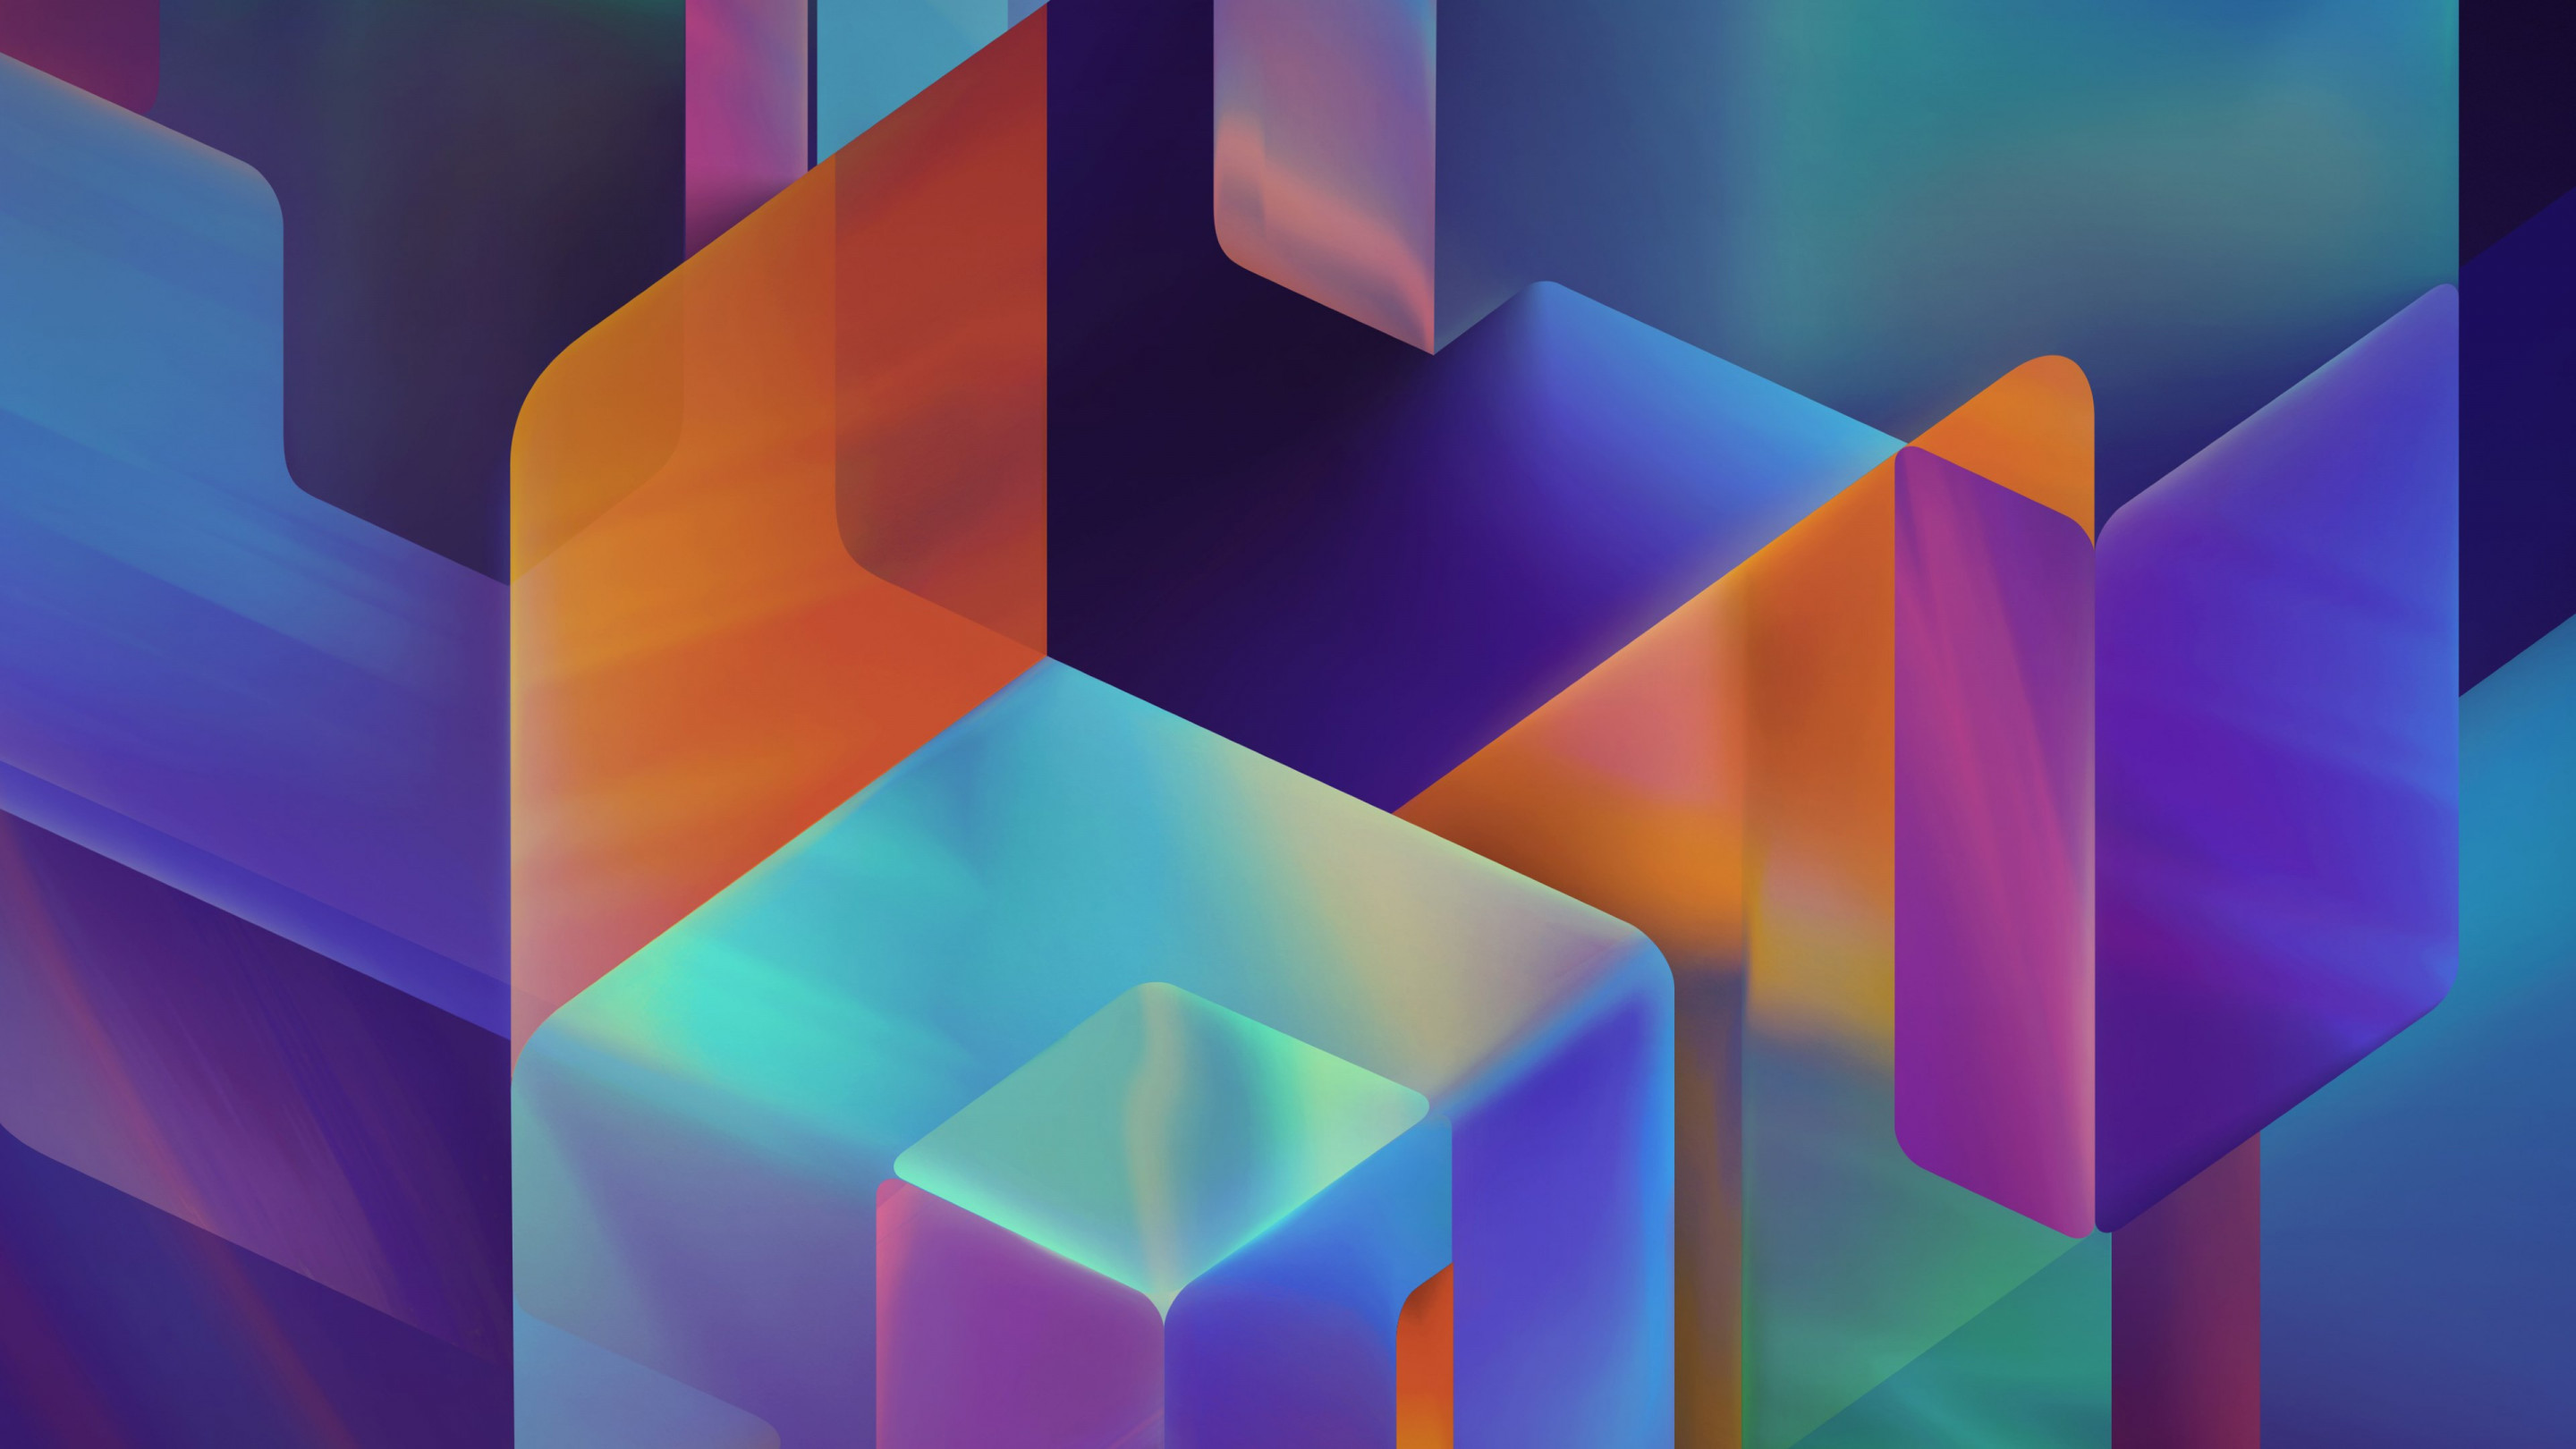 Geometric 3D shapes | 2880x1620 wallpaper